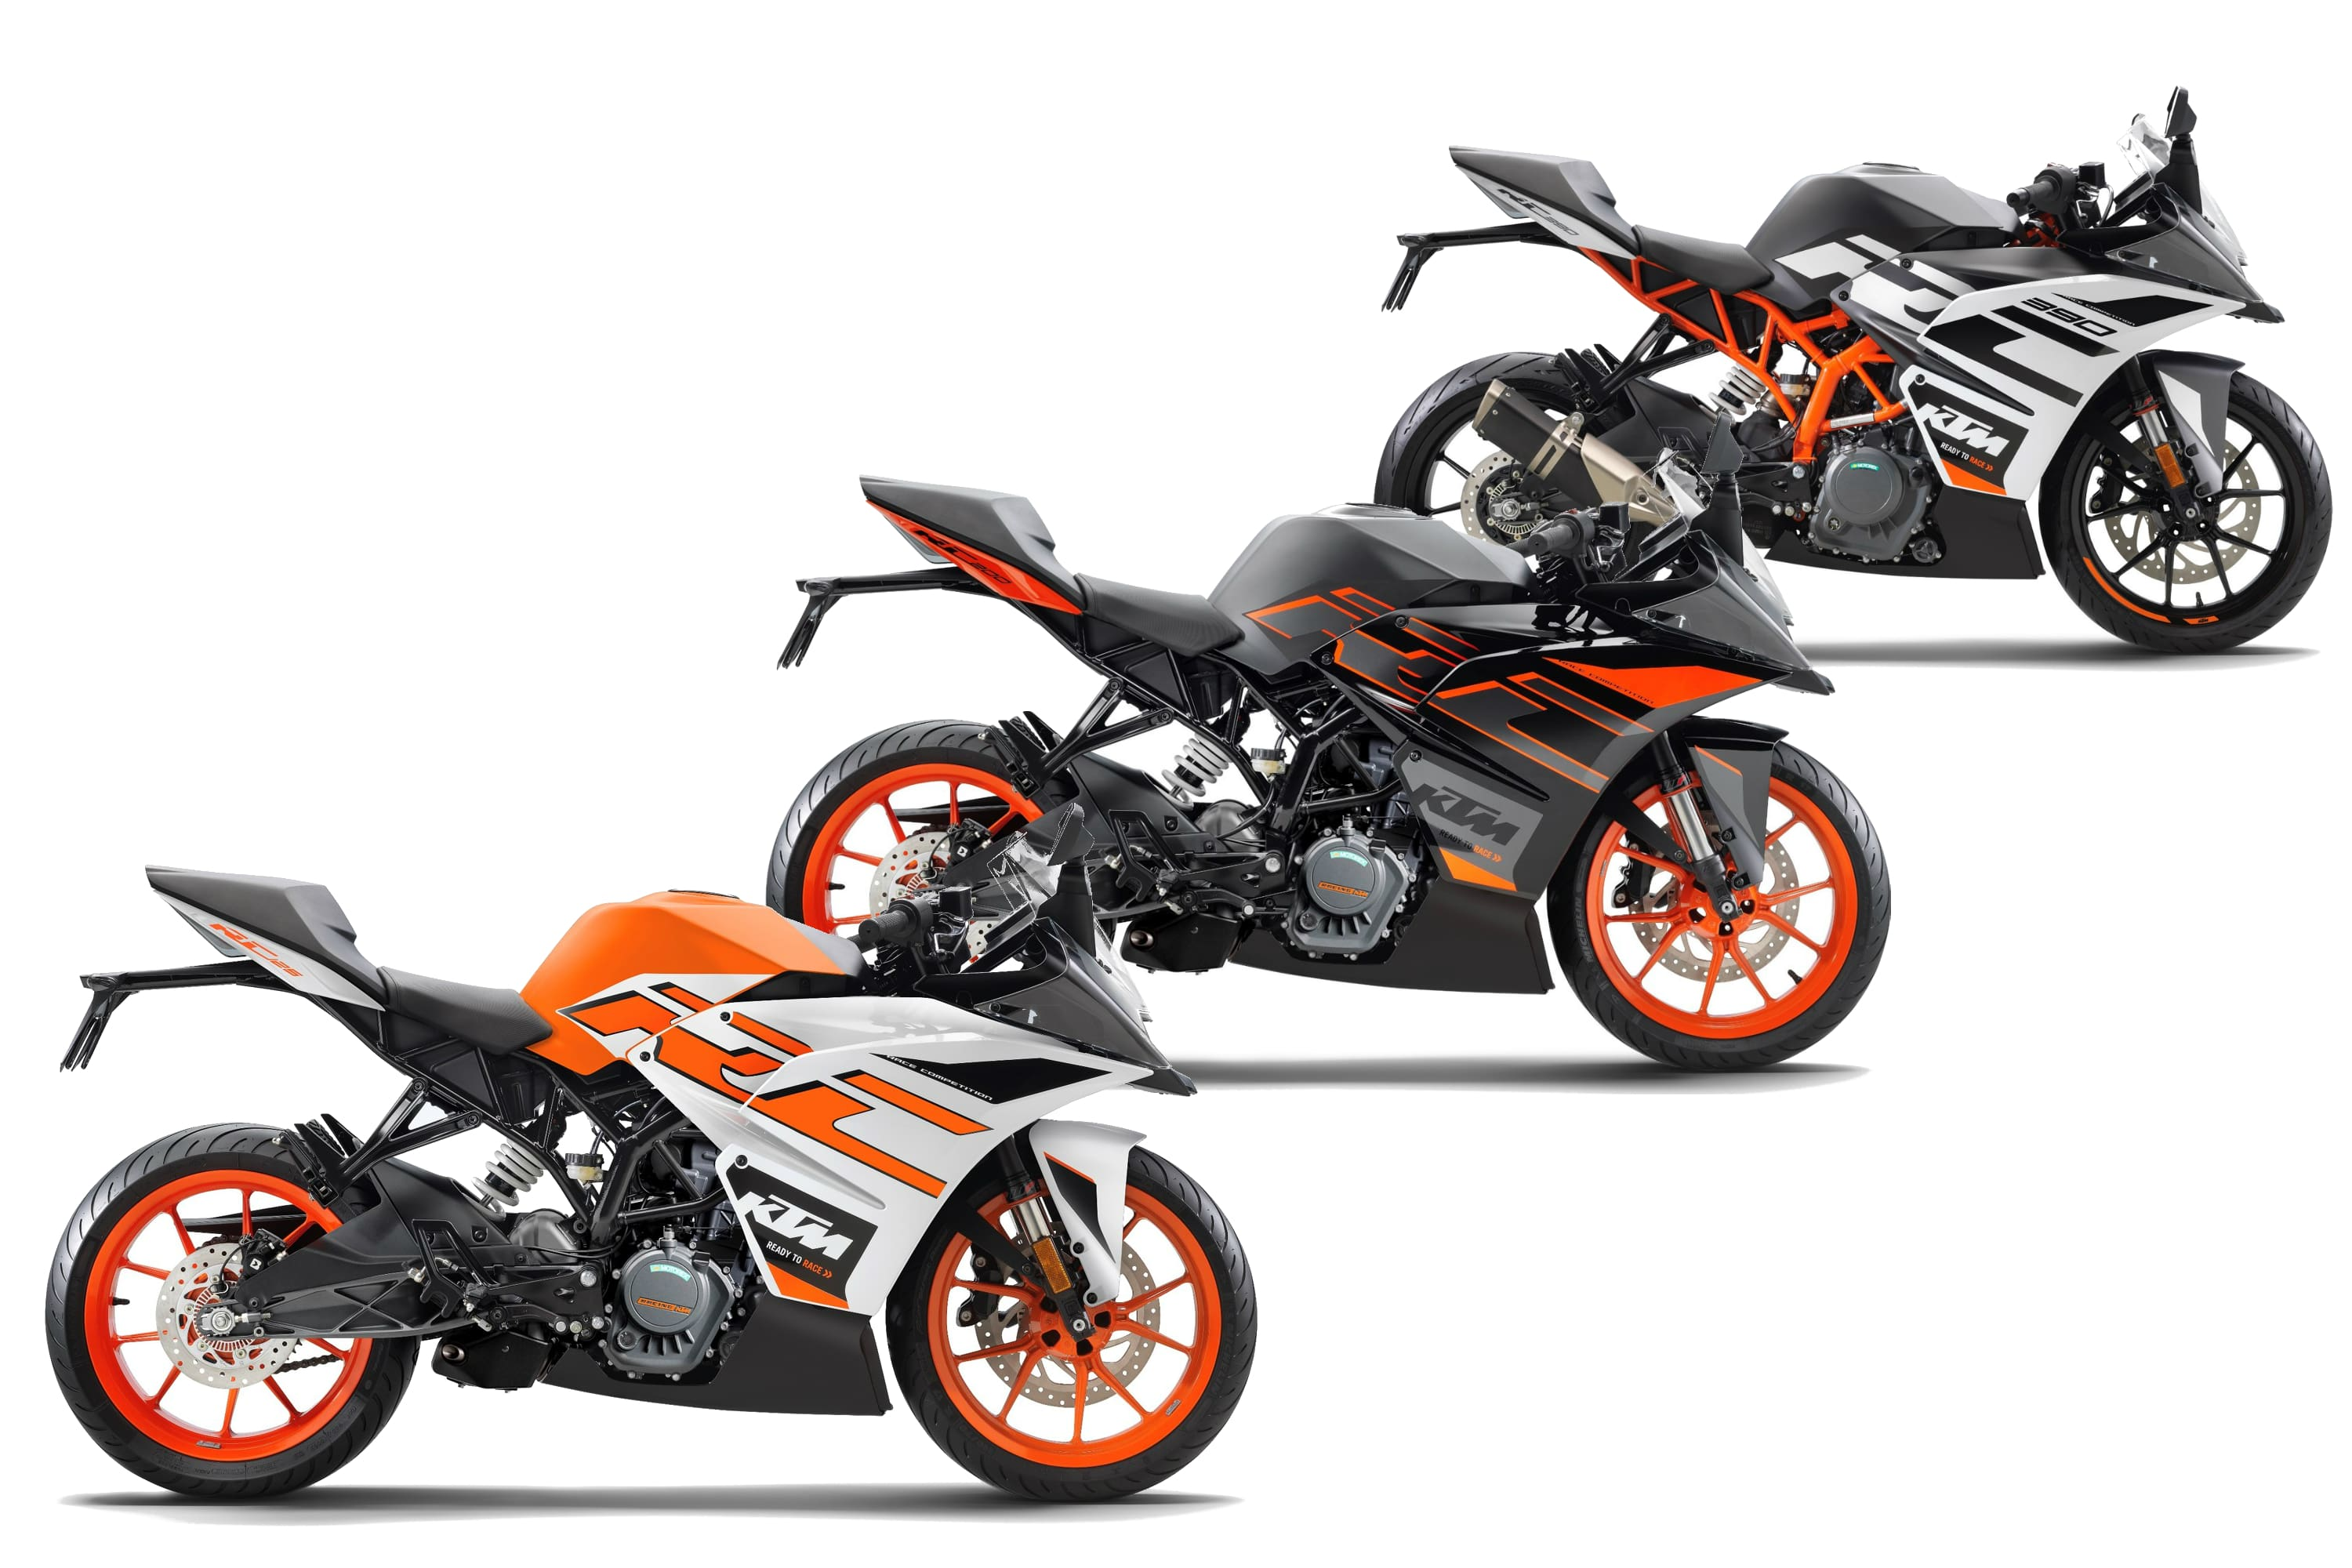 Ktm Rc 200 Bs6 Wallpapers Wallpaper Cave